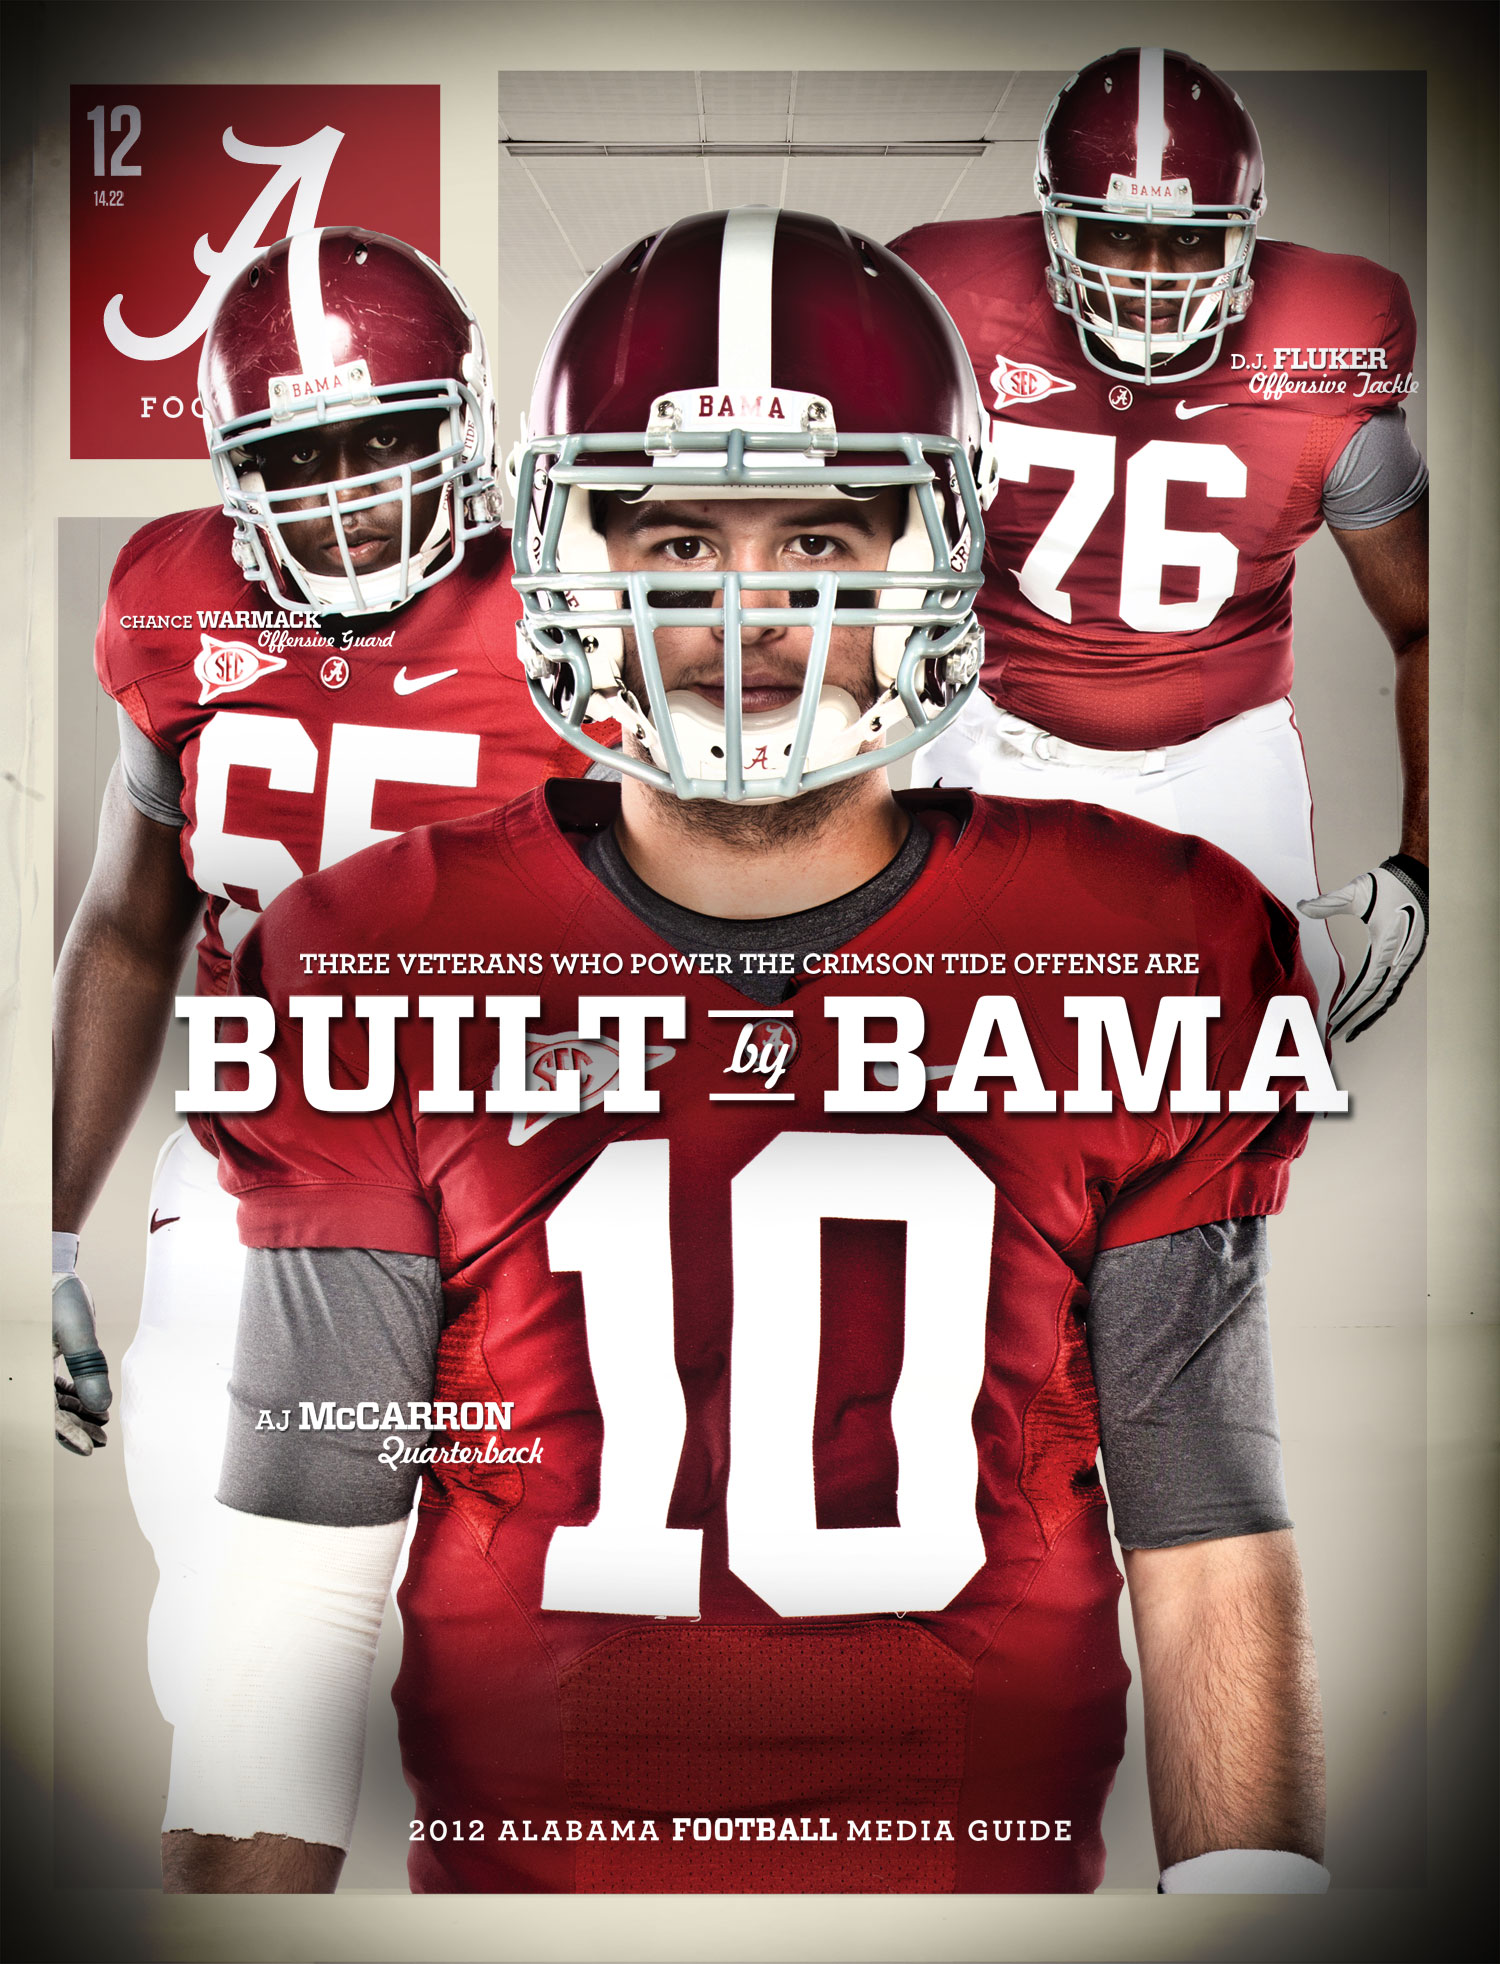 Alabama Football Media Guide Covers HD Background Wallpaper 1500x1964